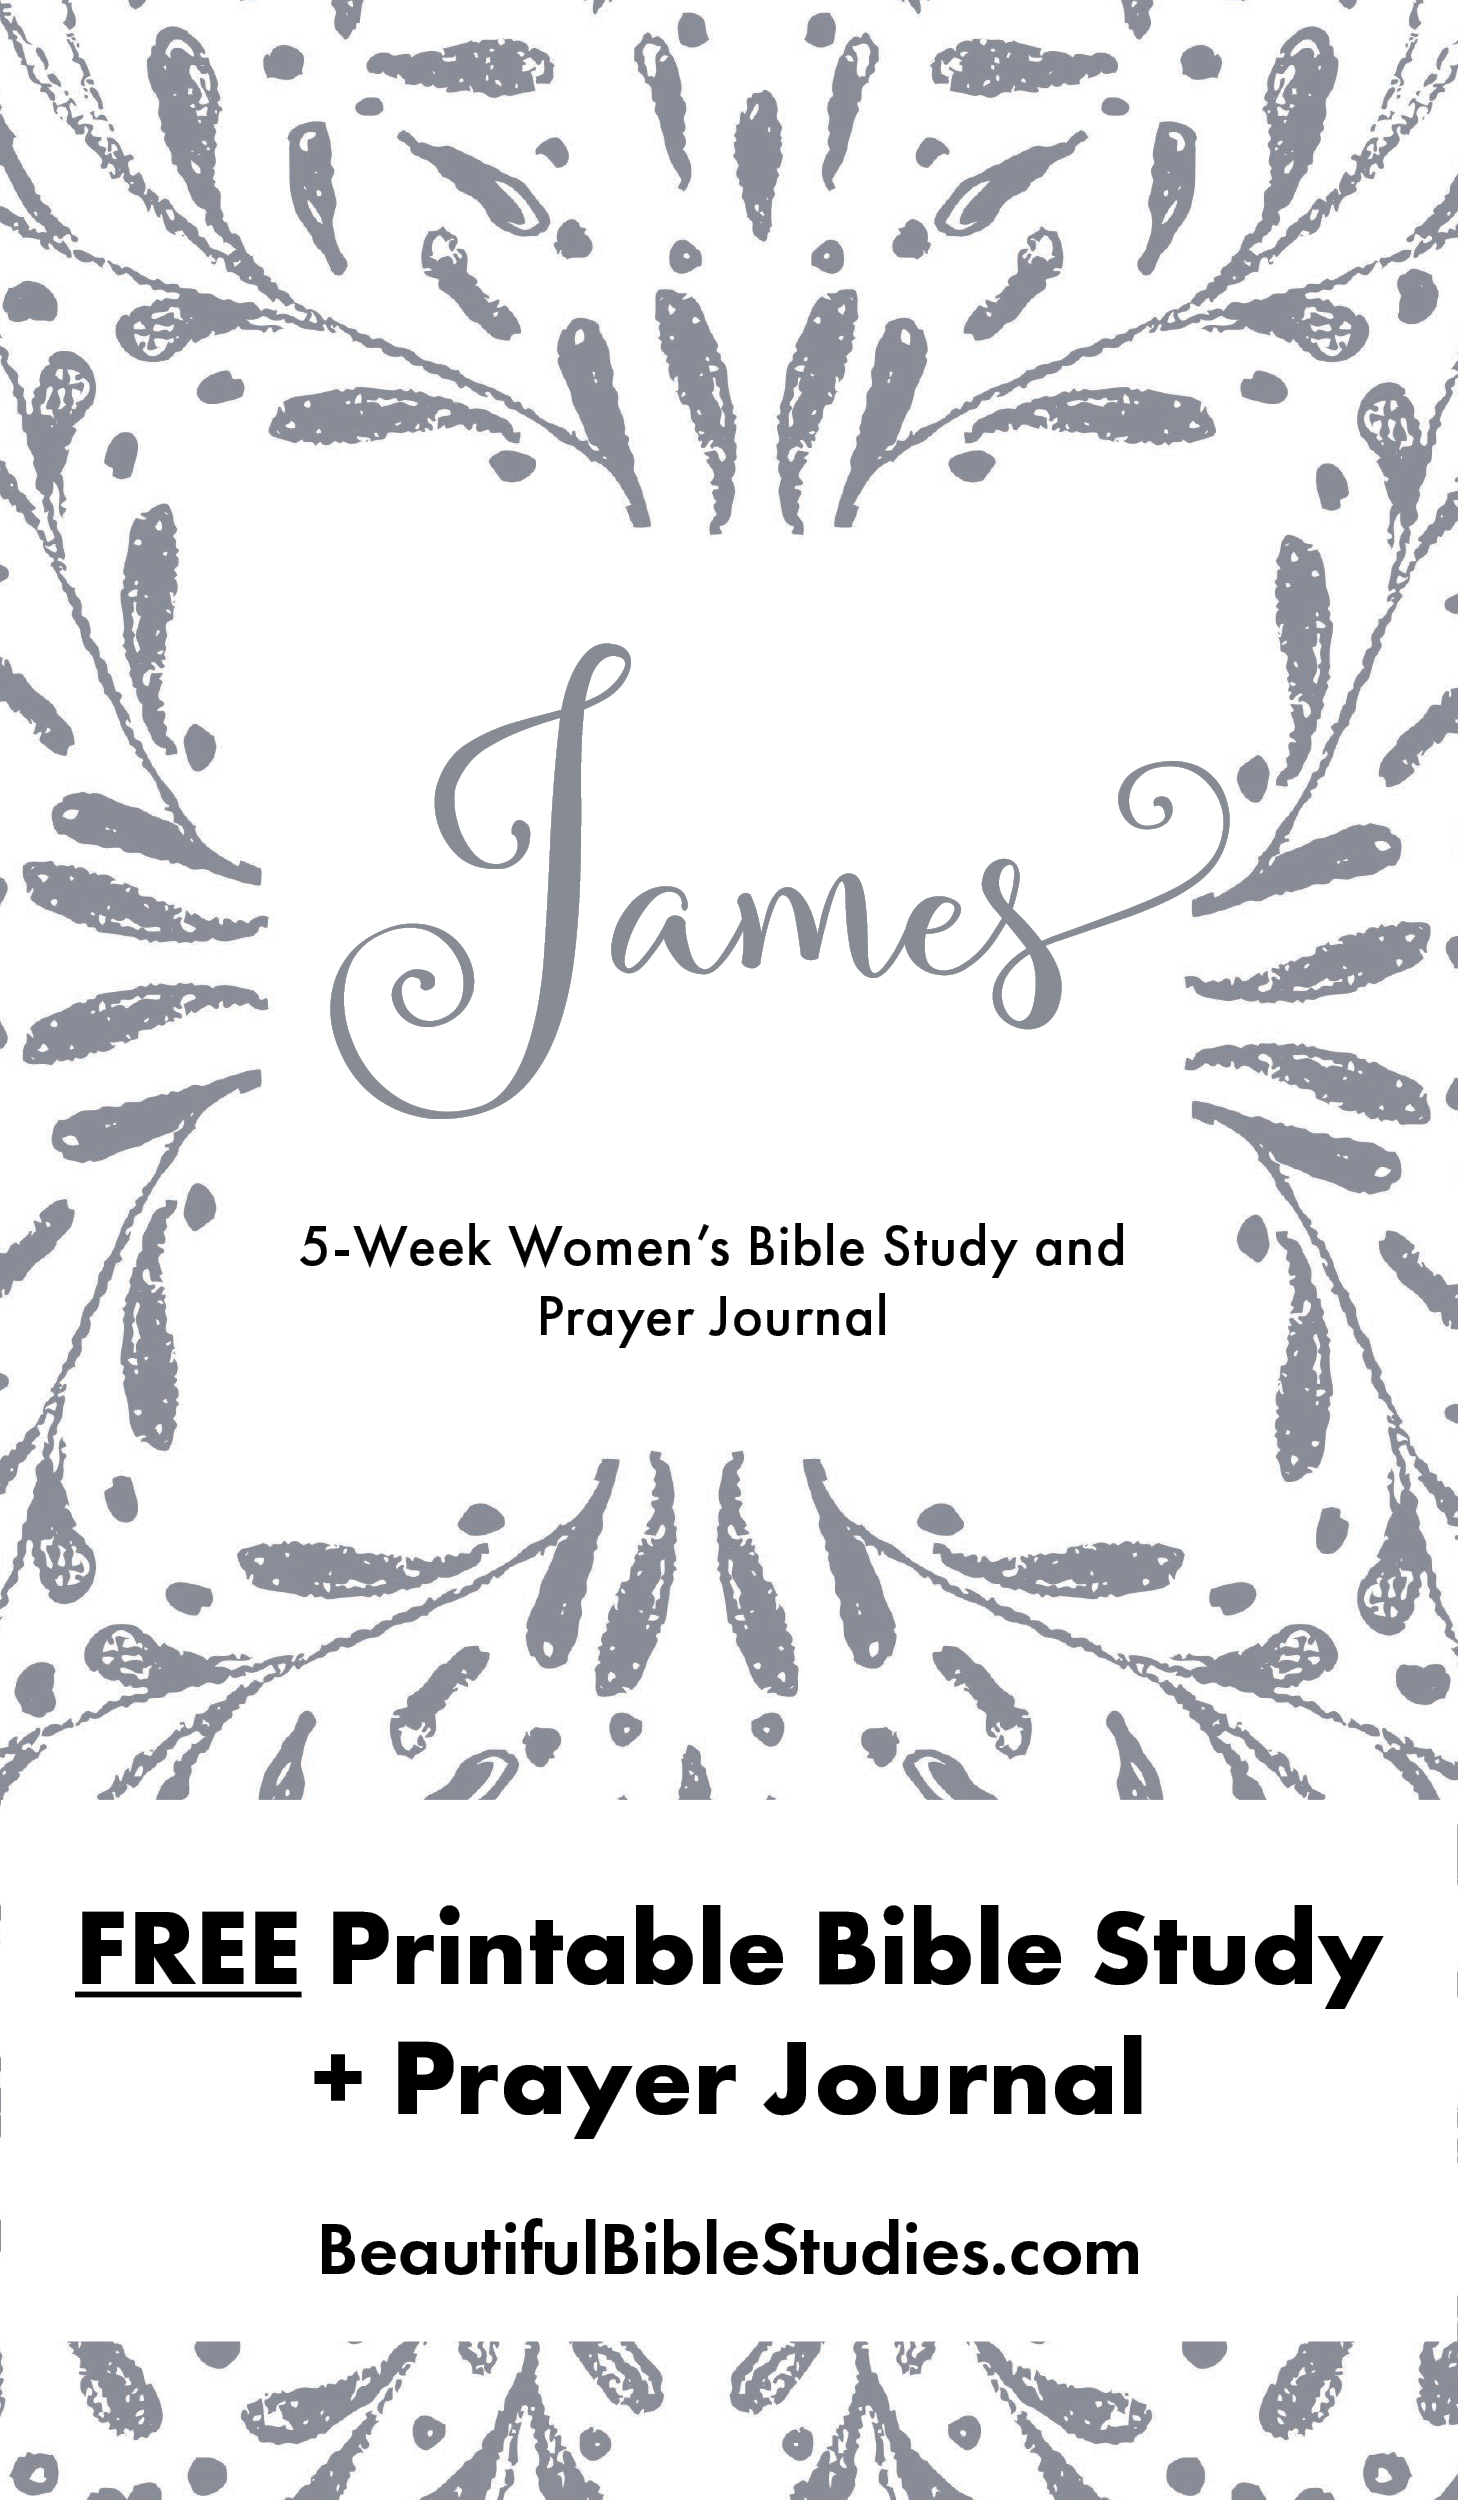 free printable women's bible study guide and prayer journal. do you